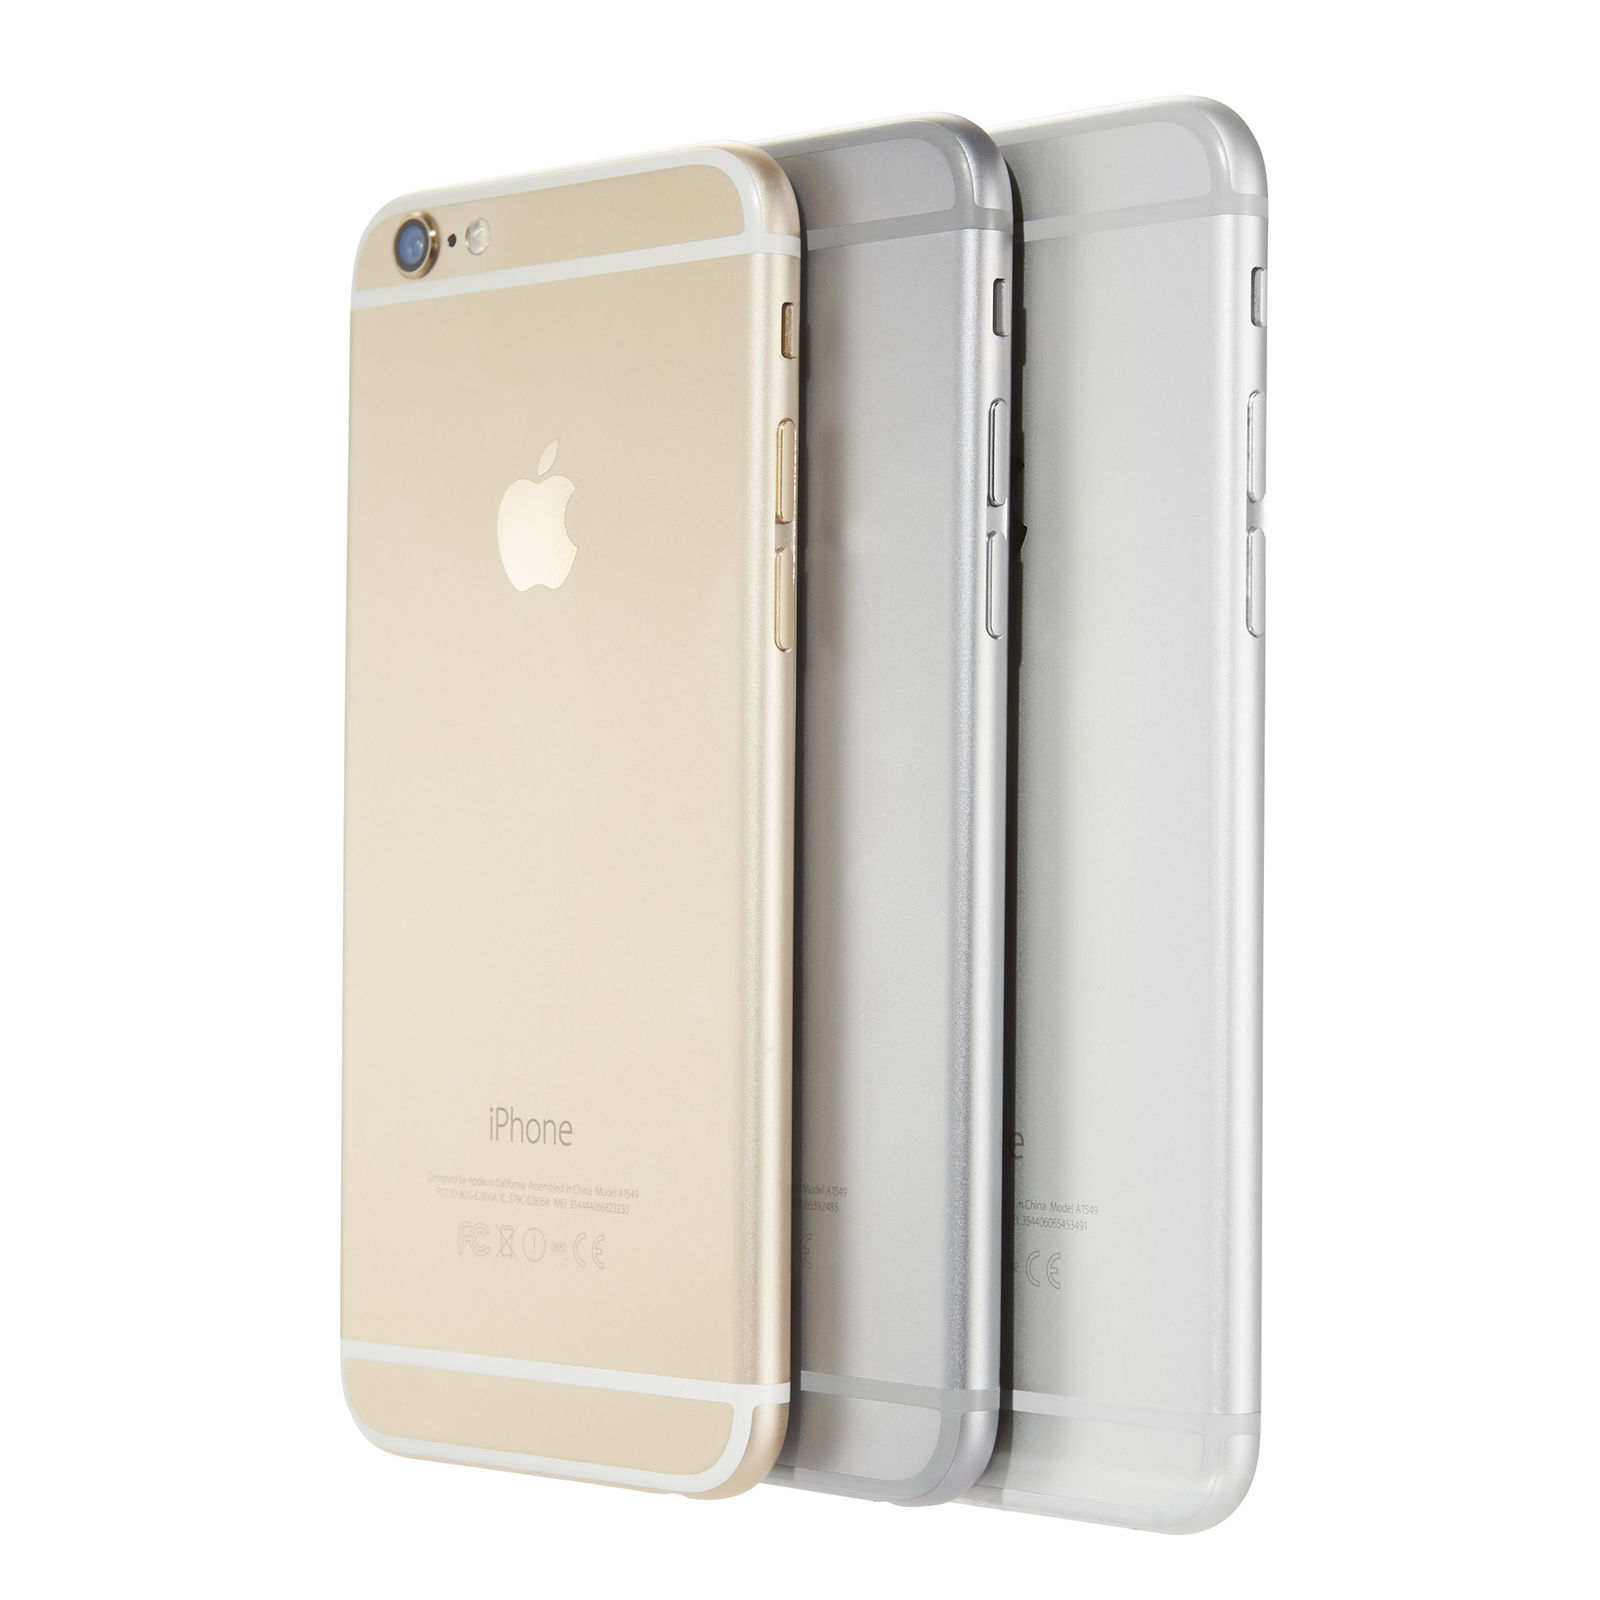 NEW APPLE IPHONE 6 GSM UNLOCKED 16GB ALL COLORS